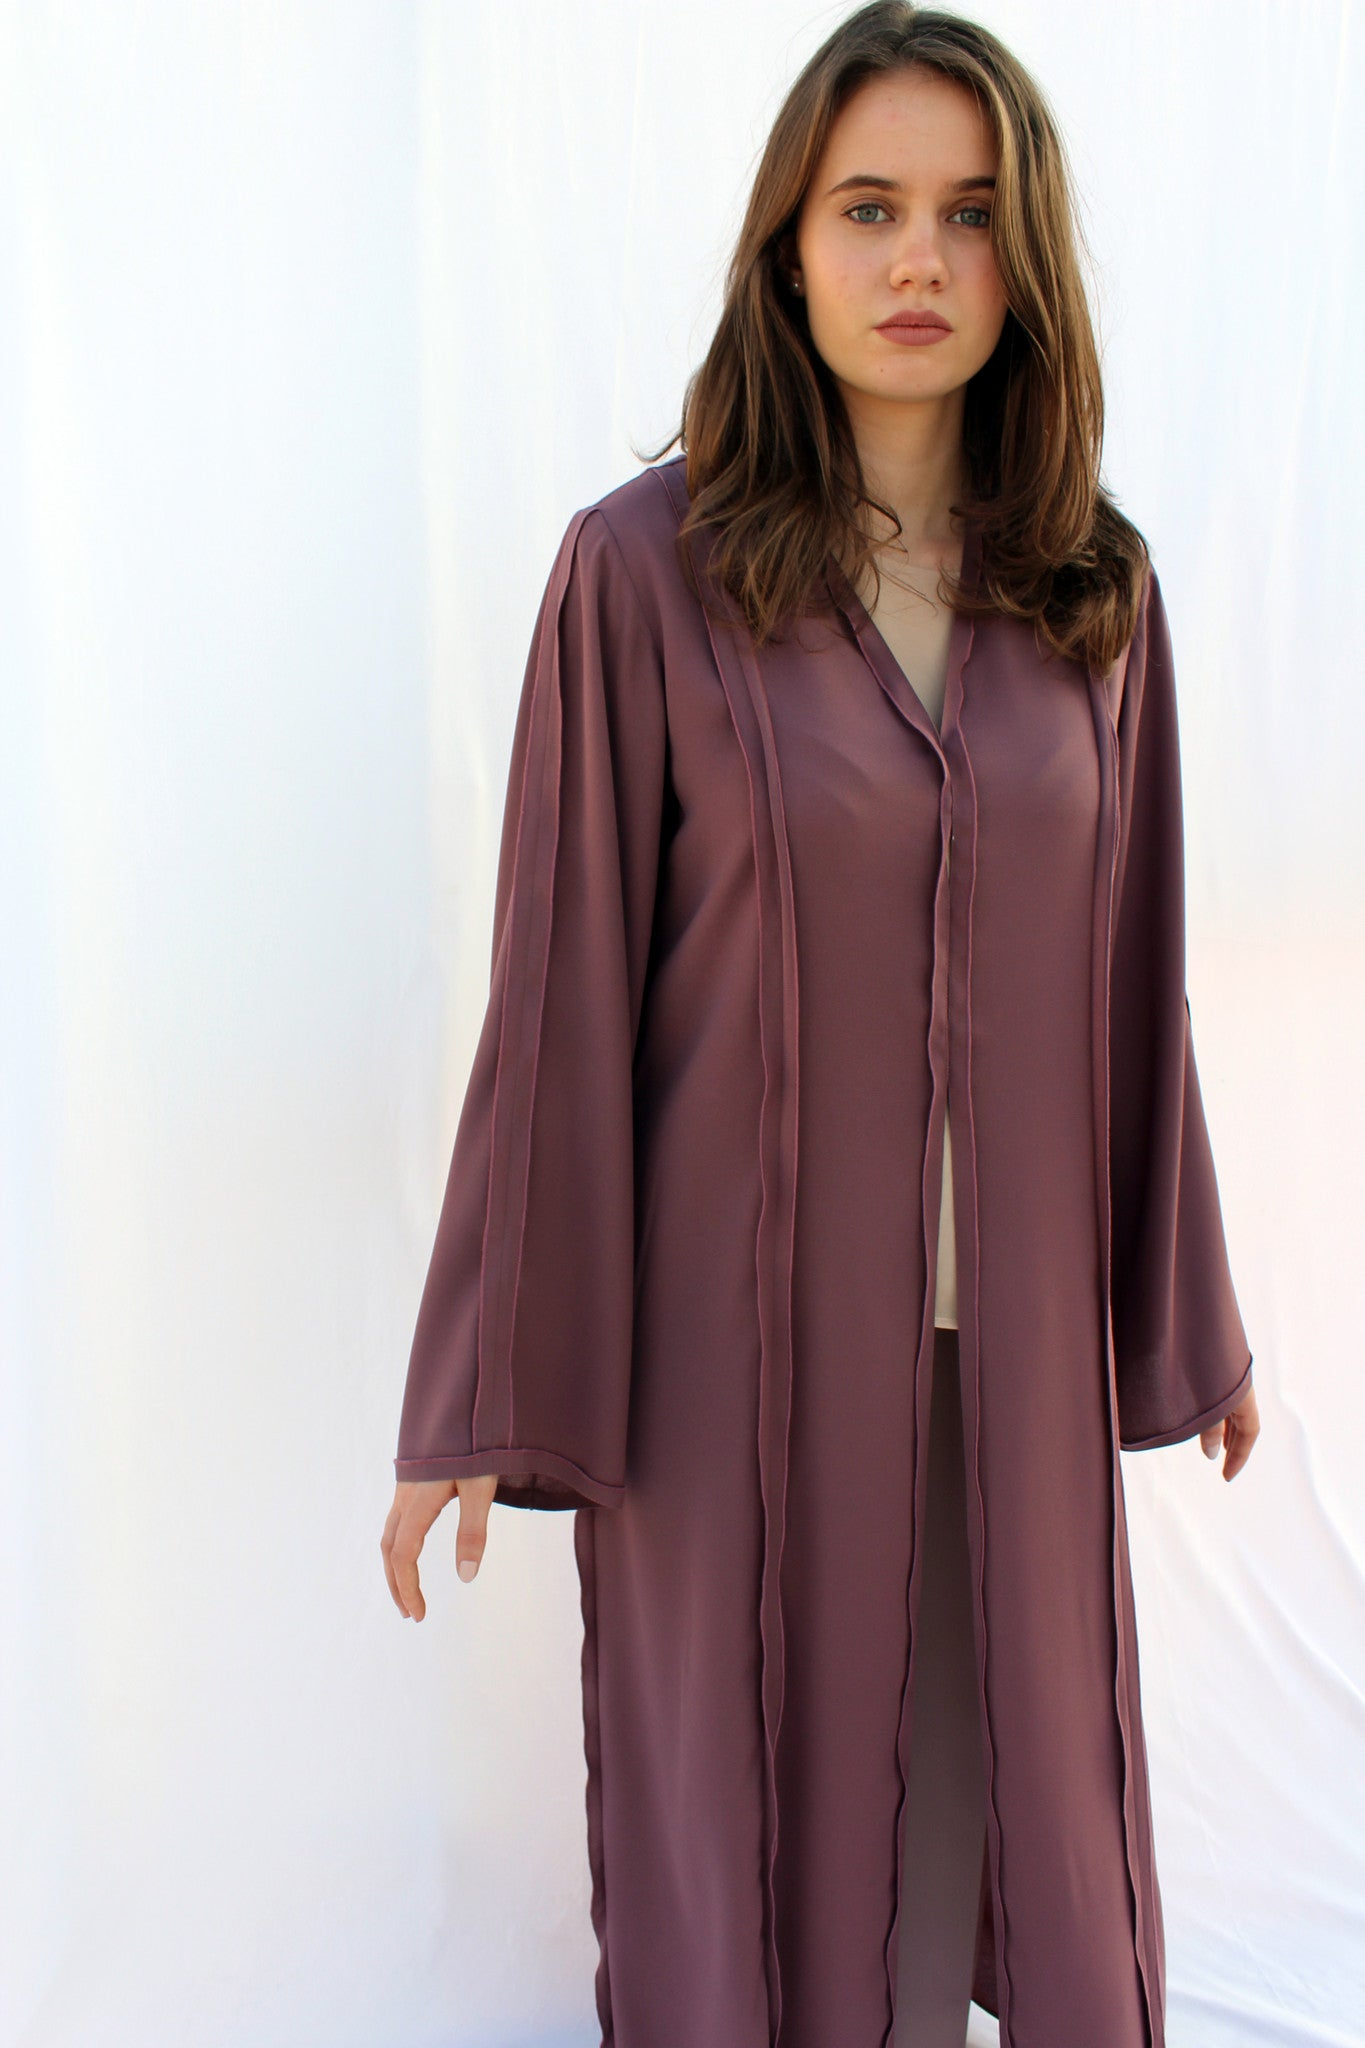 ELIZABETH - AMM1952F - Arabesque Classic cut abaya shape in full colored fabric embellished with multiple joints with inside-out finishing in front, back and sleeves.